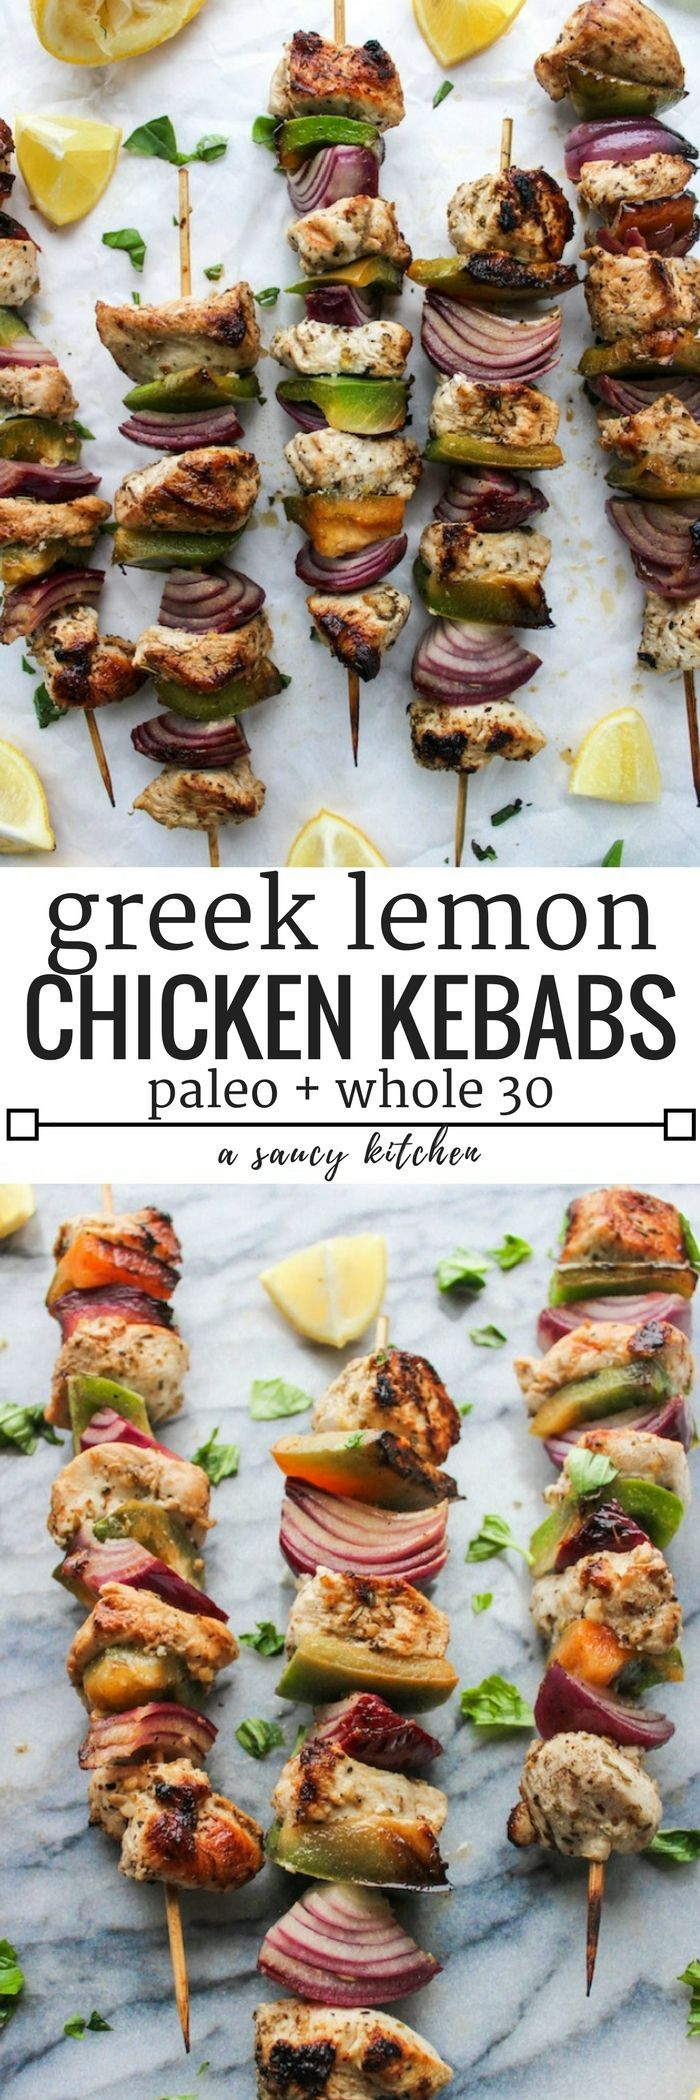 Greek inspired Lemon Chicken Kebabs made on the stove top  | Paleo + Whole 30